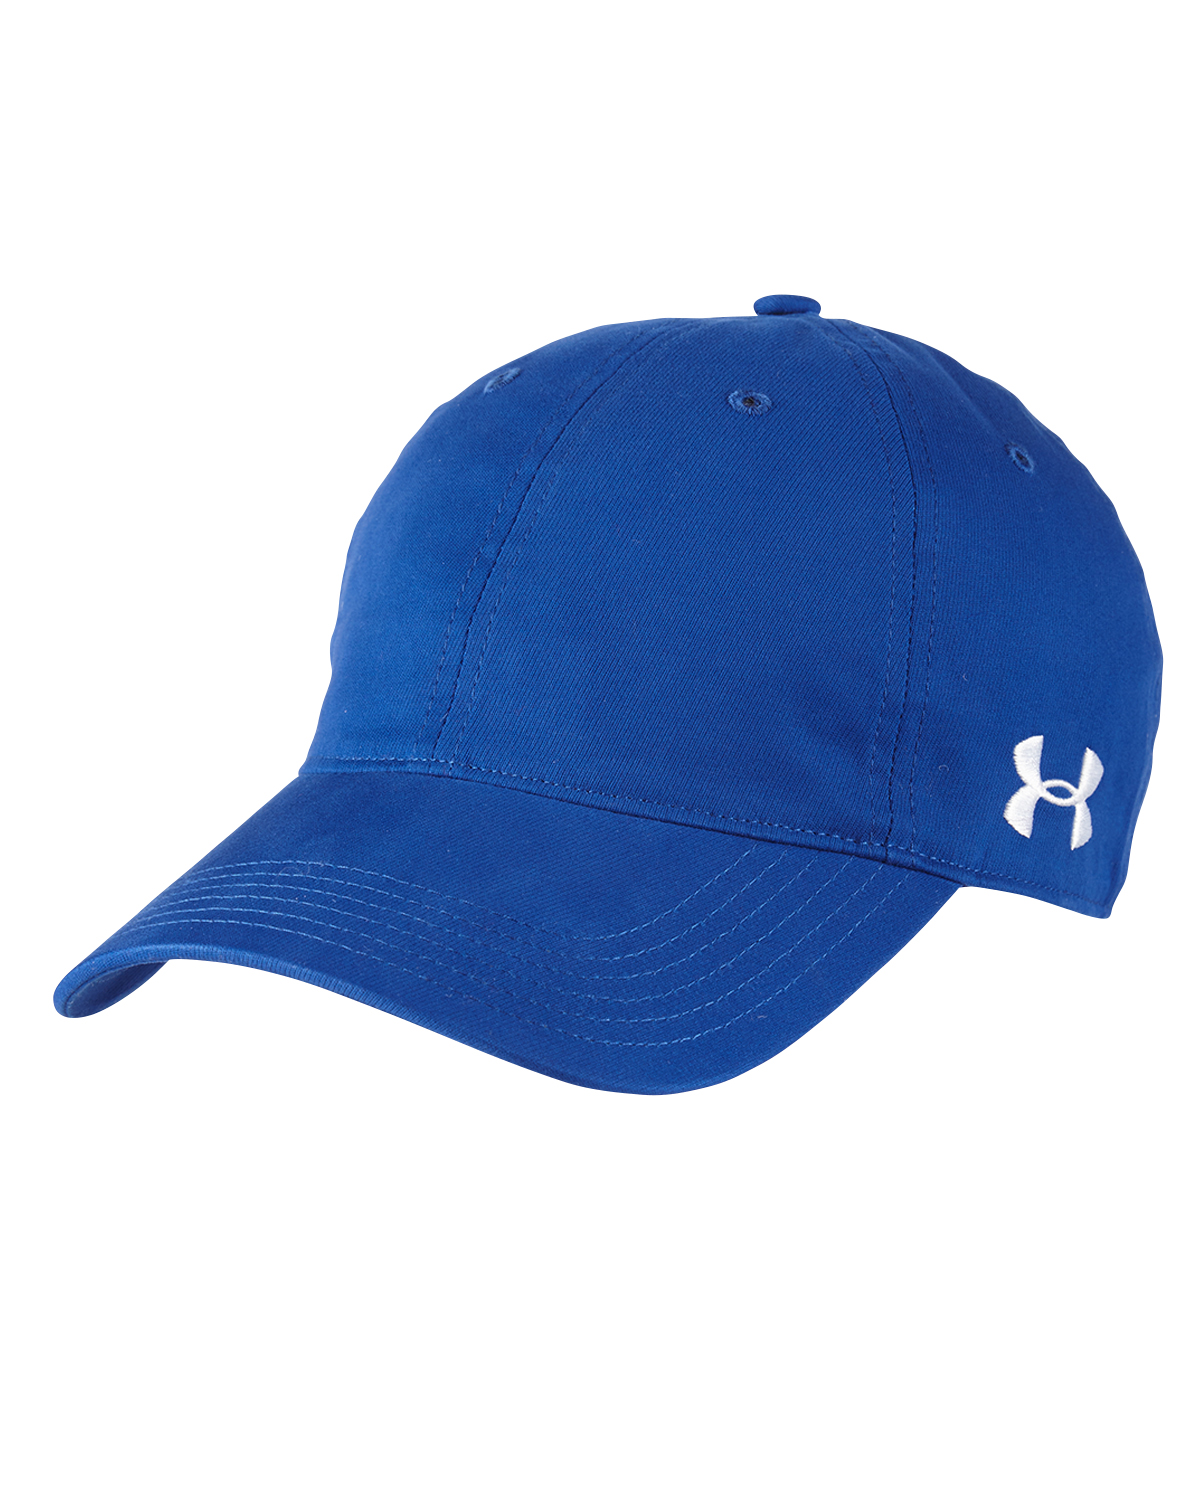 93f40b6e Under Armour Adjustable Chino Cap. 1282140